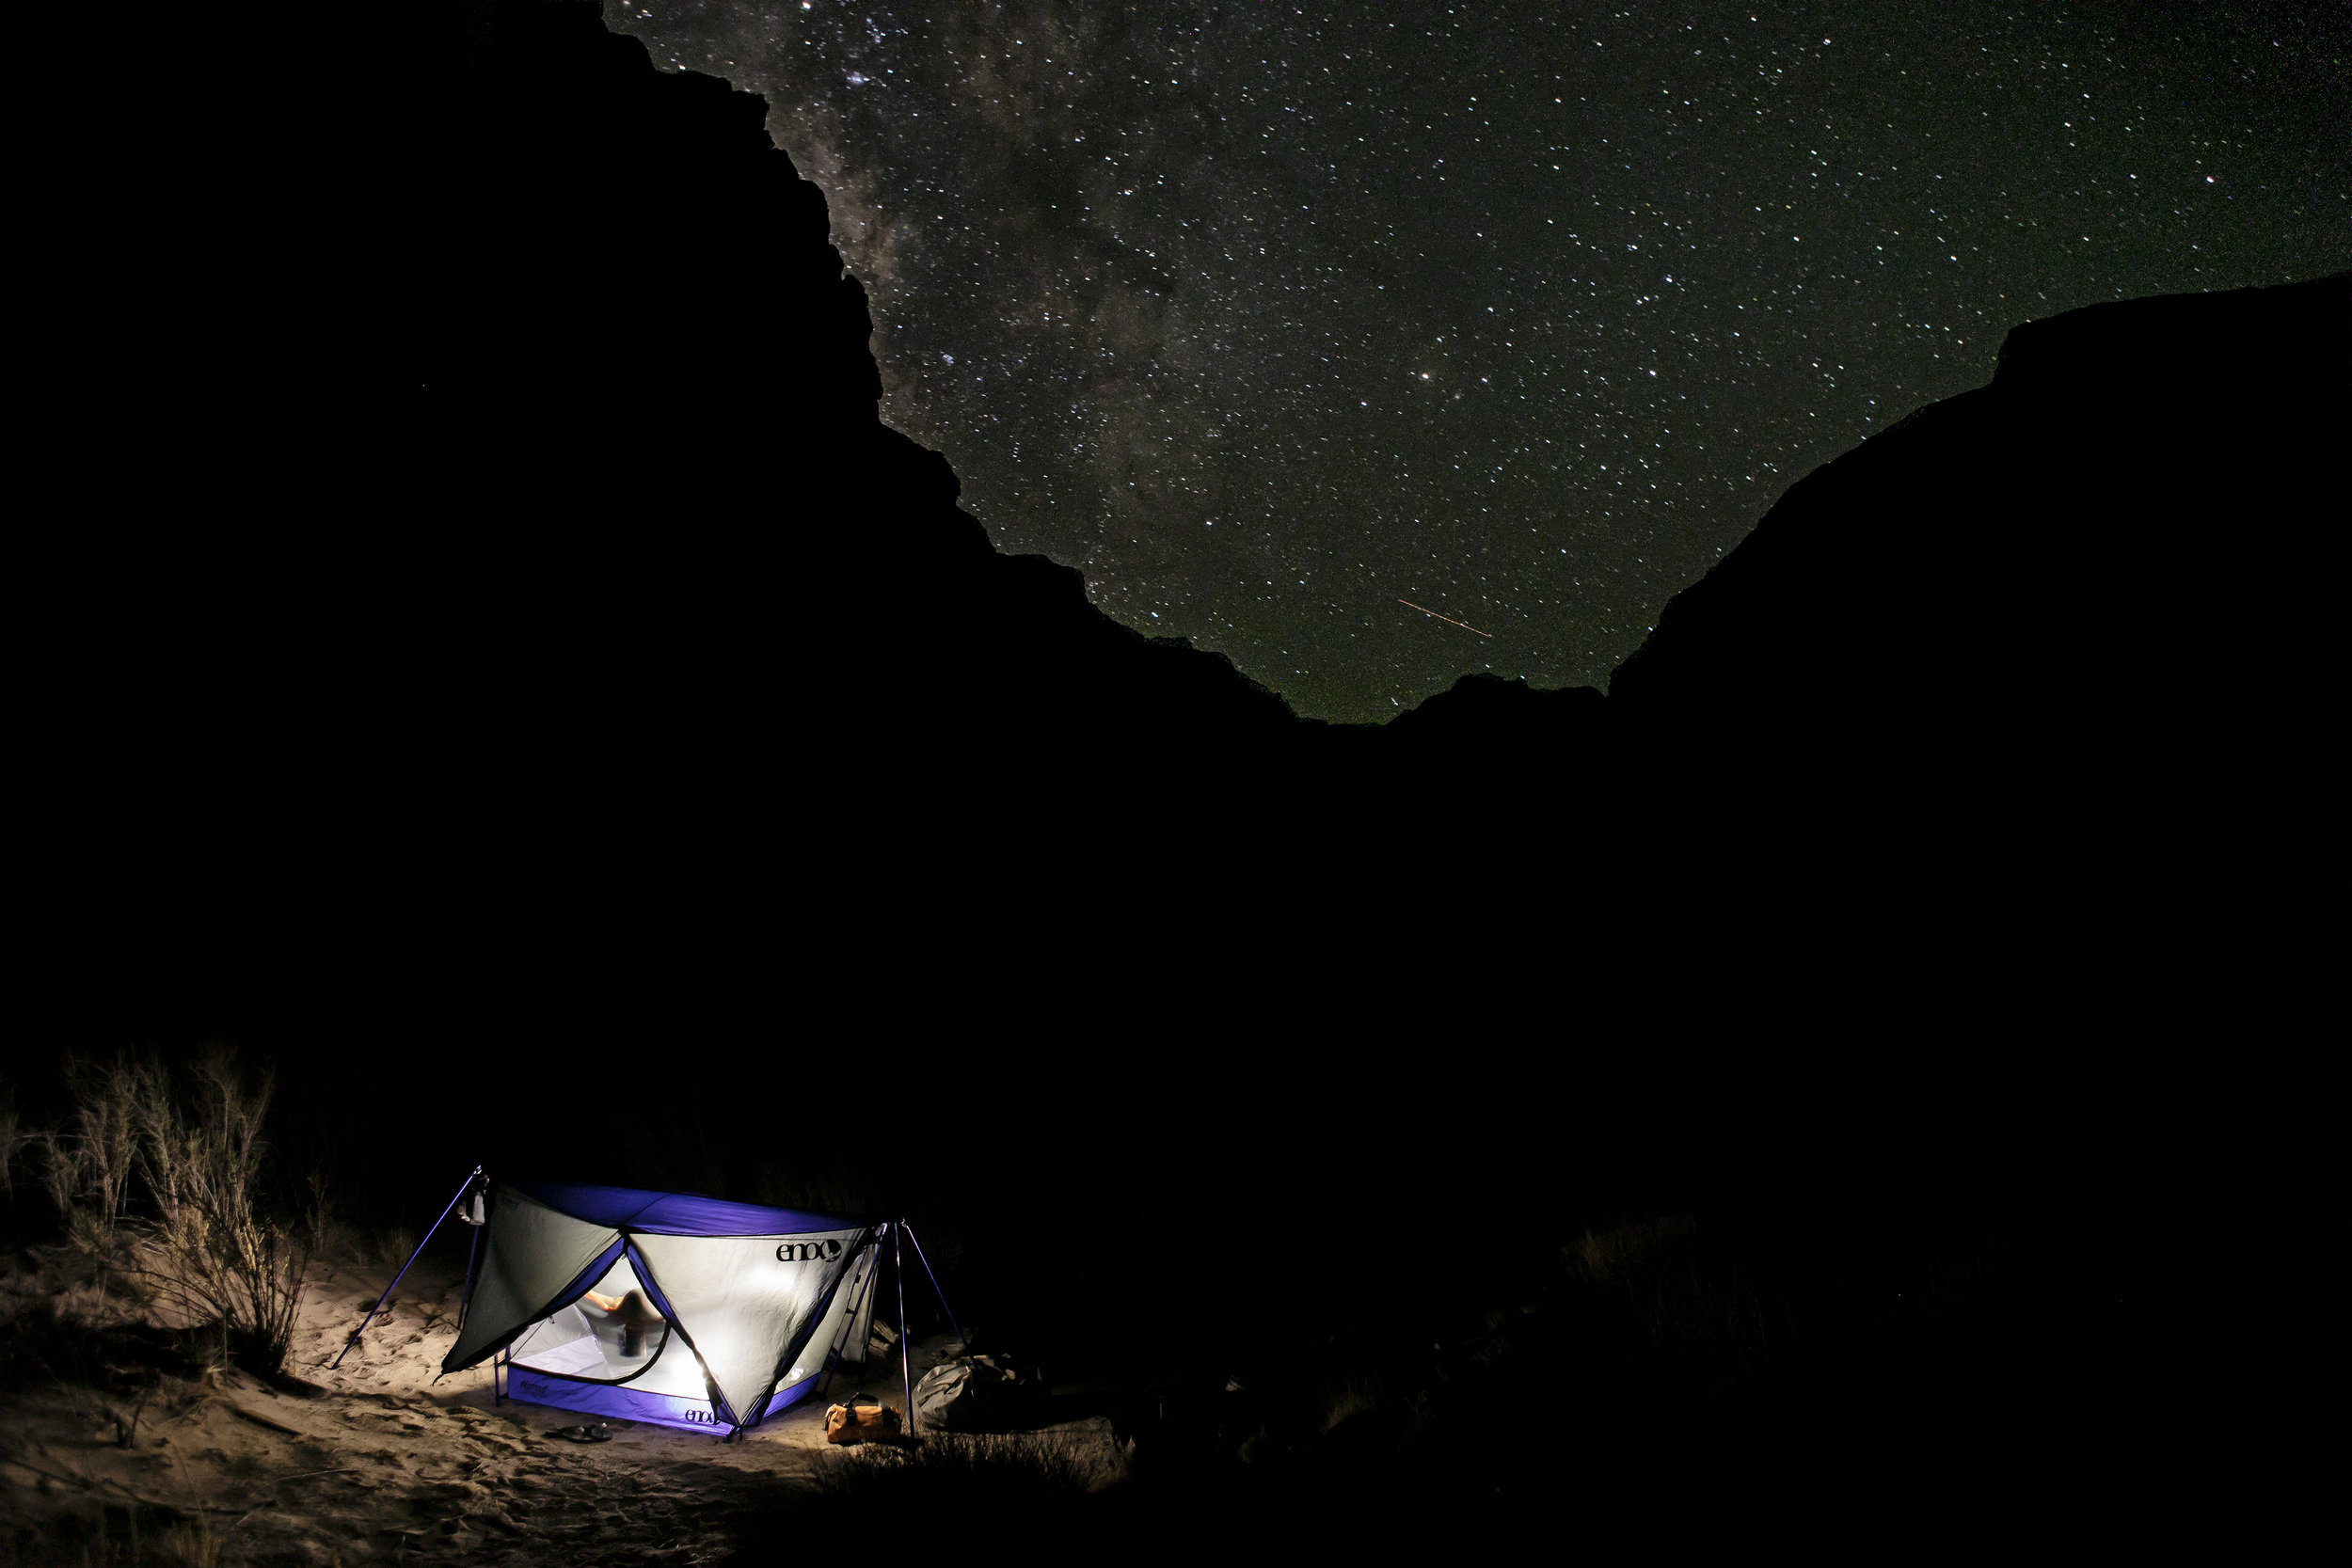 ENO Nomad shelter at 2AM. When you gotta go, and happen to notice the milky way, you get the camera out.